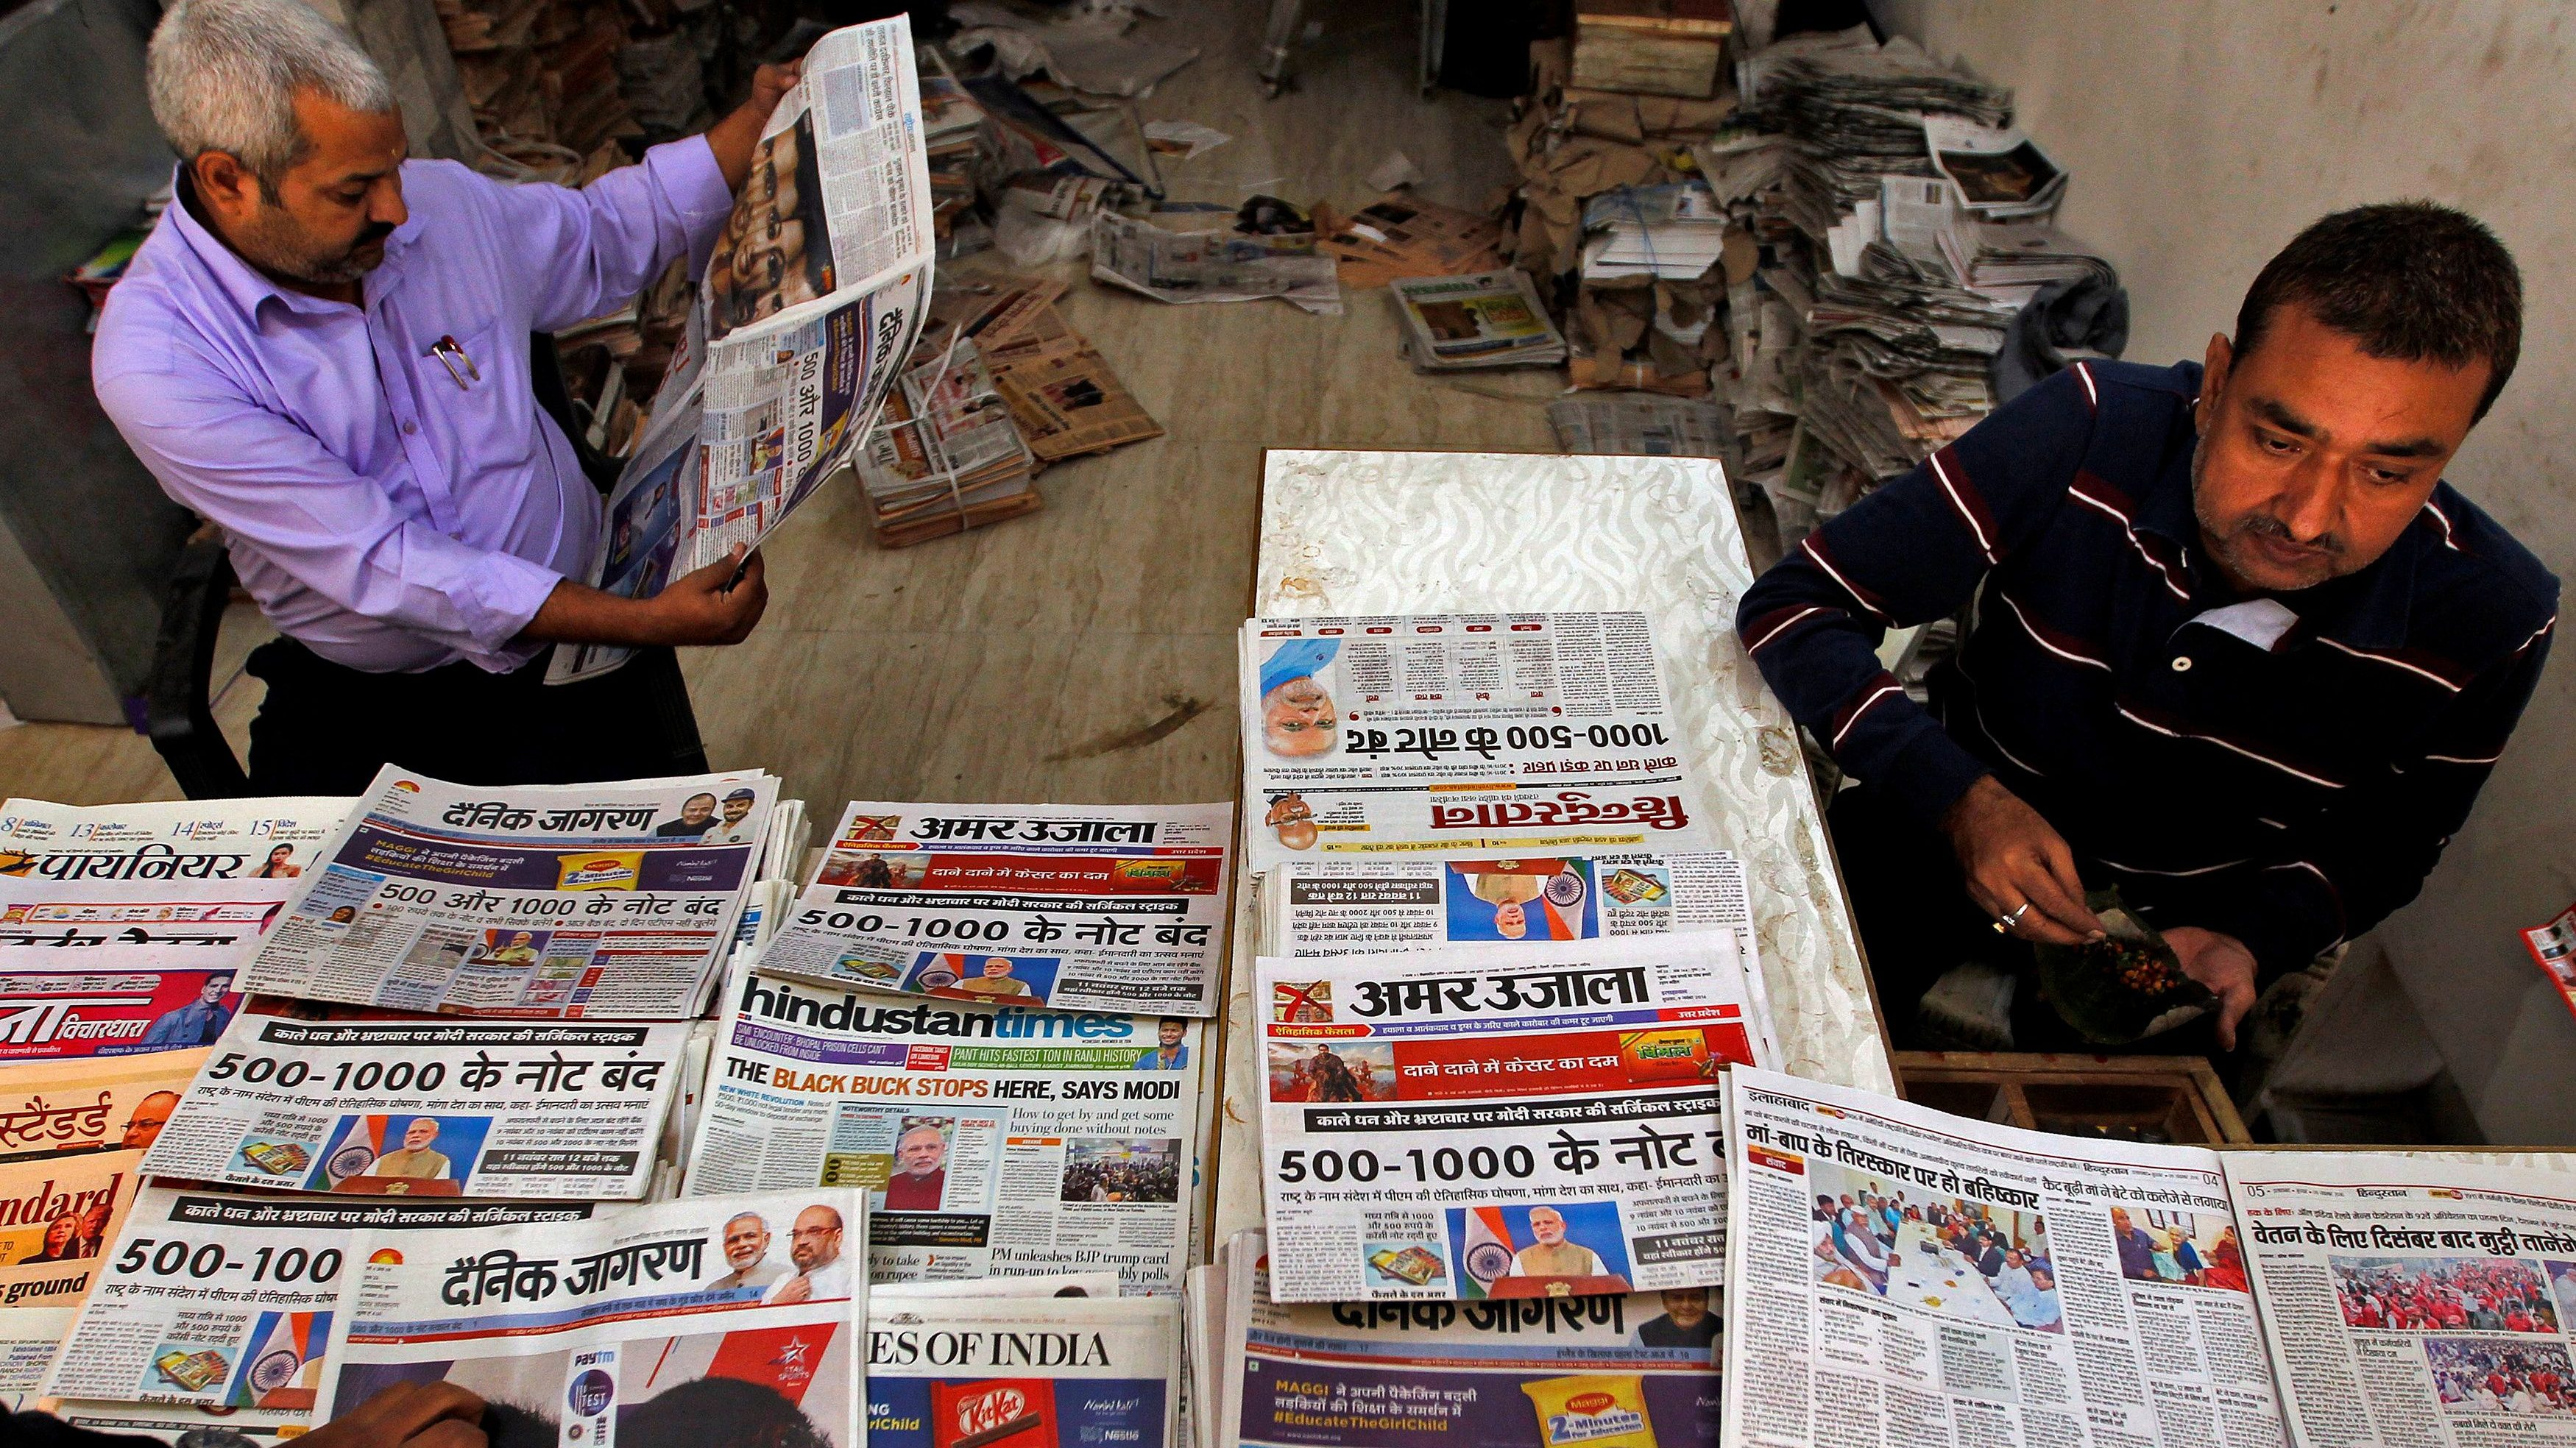 A man reads a cover story in a daily national newspaper about the withdrawal of 500 and 1000 rupee banknotes from circulation across India, at a roadside stall in Allahabad, India, November 9, 2016. REUTERS/Jitendra Prakash - D1BEULUNUNAB